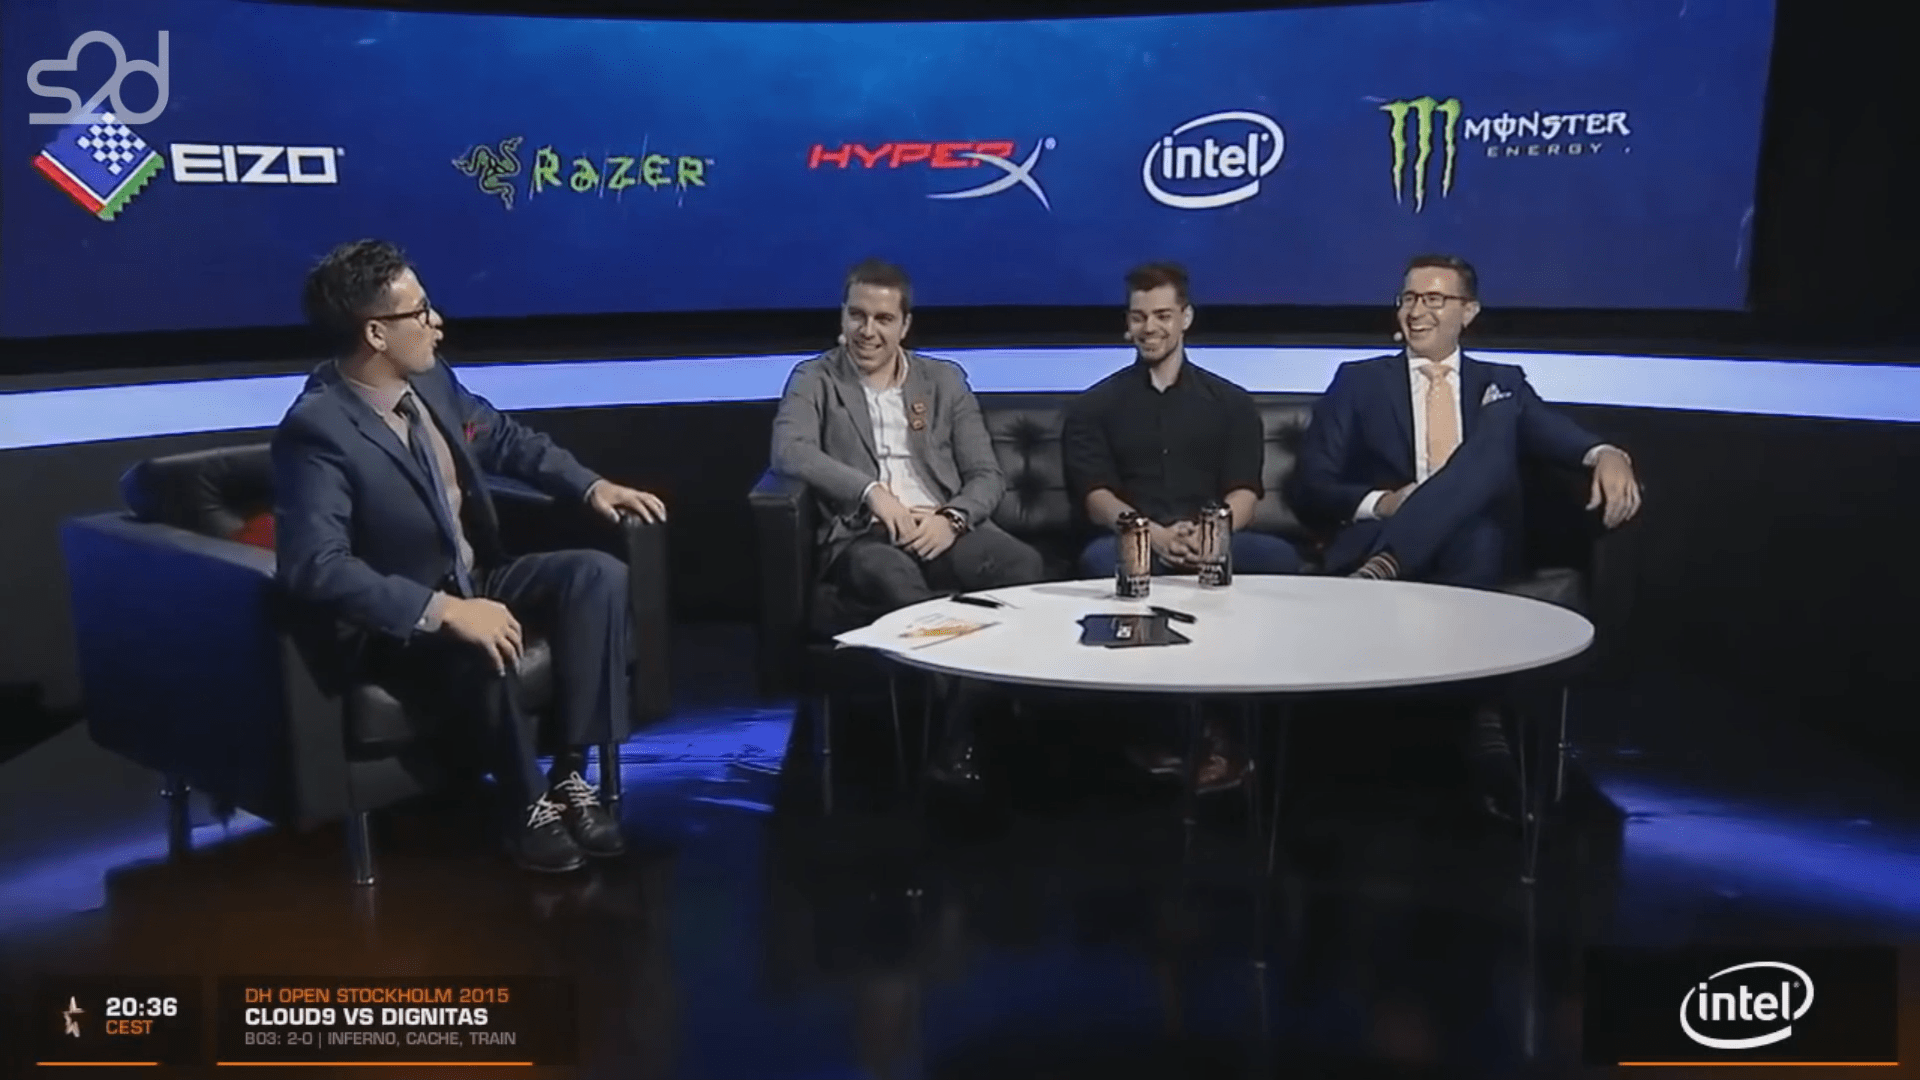 Former Overwatch League Caster Semmler Calls Out Blizzard For Treatment Of Players